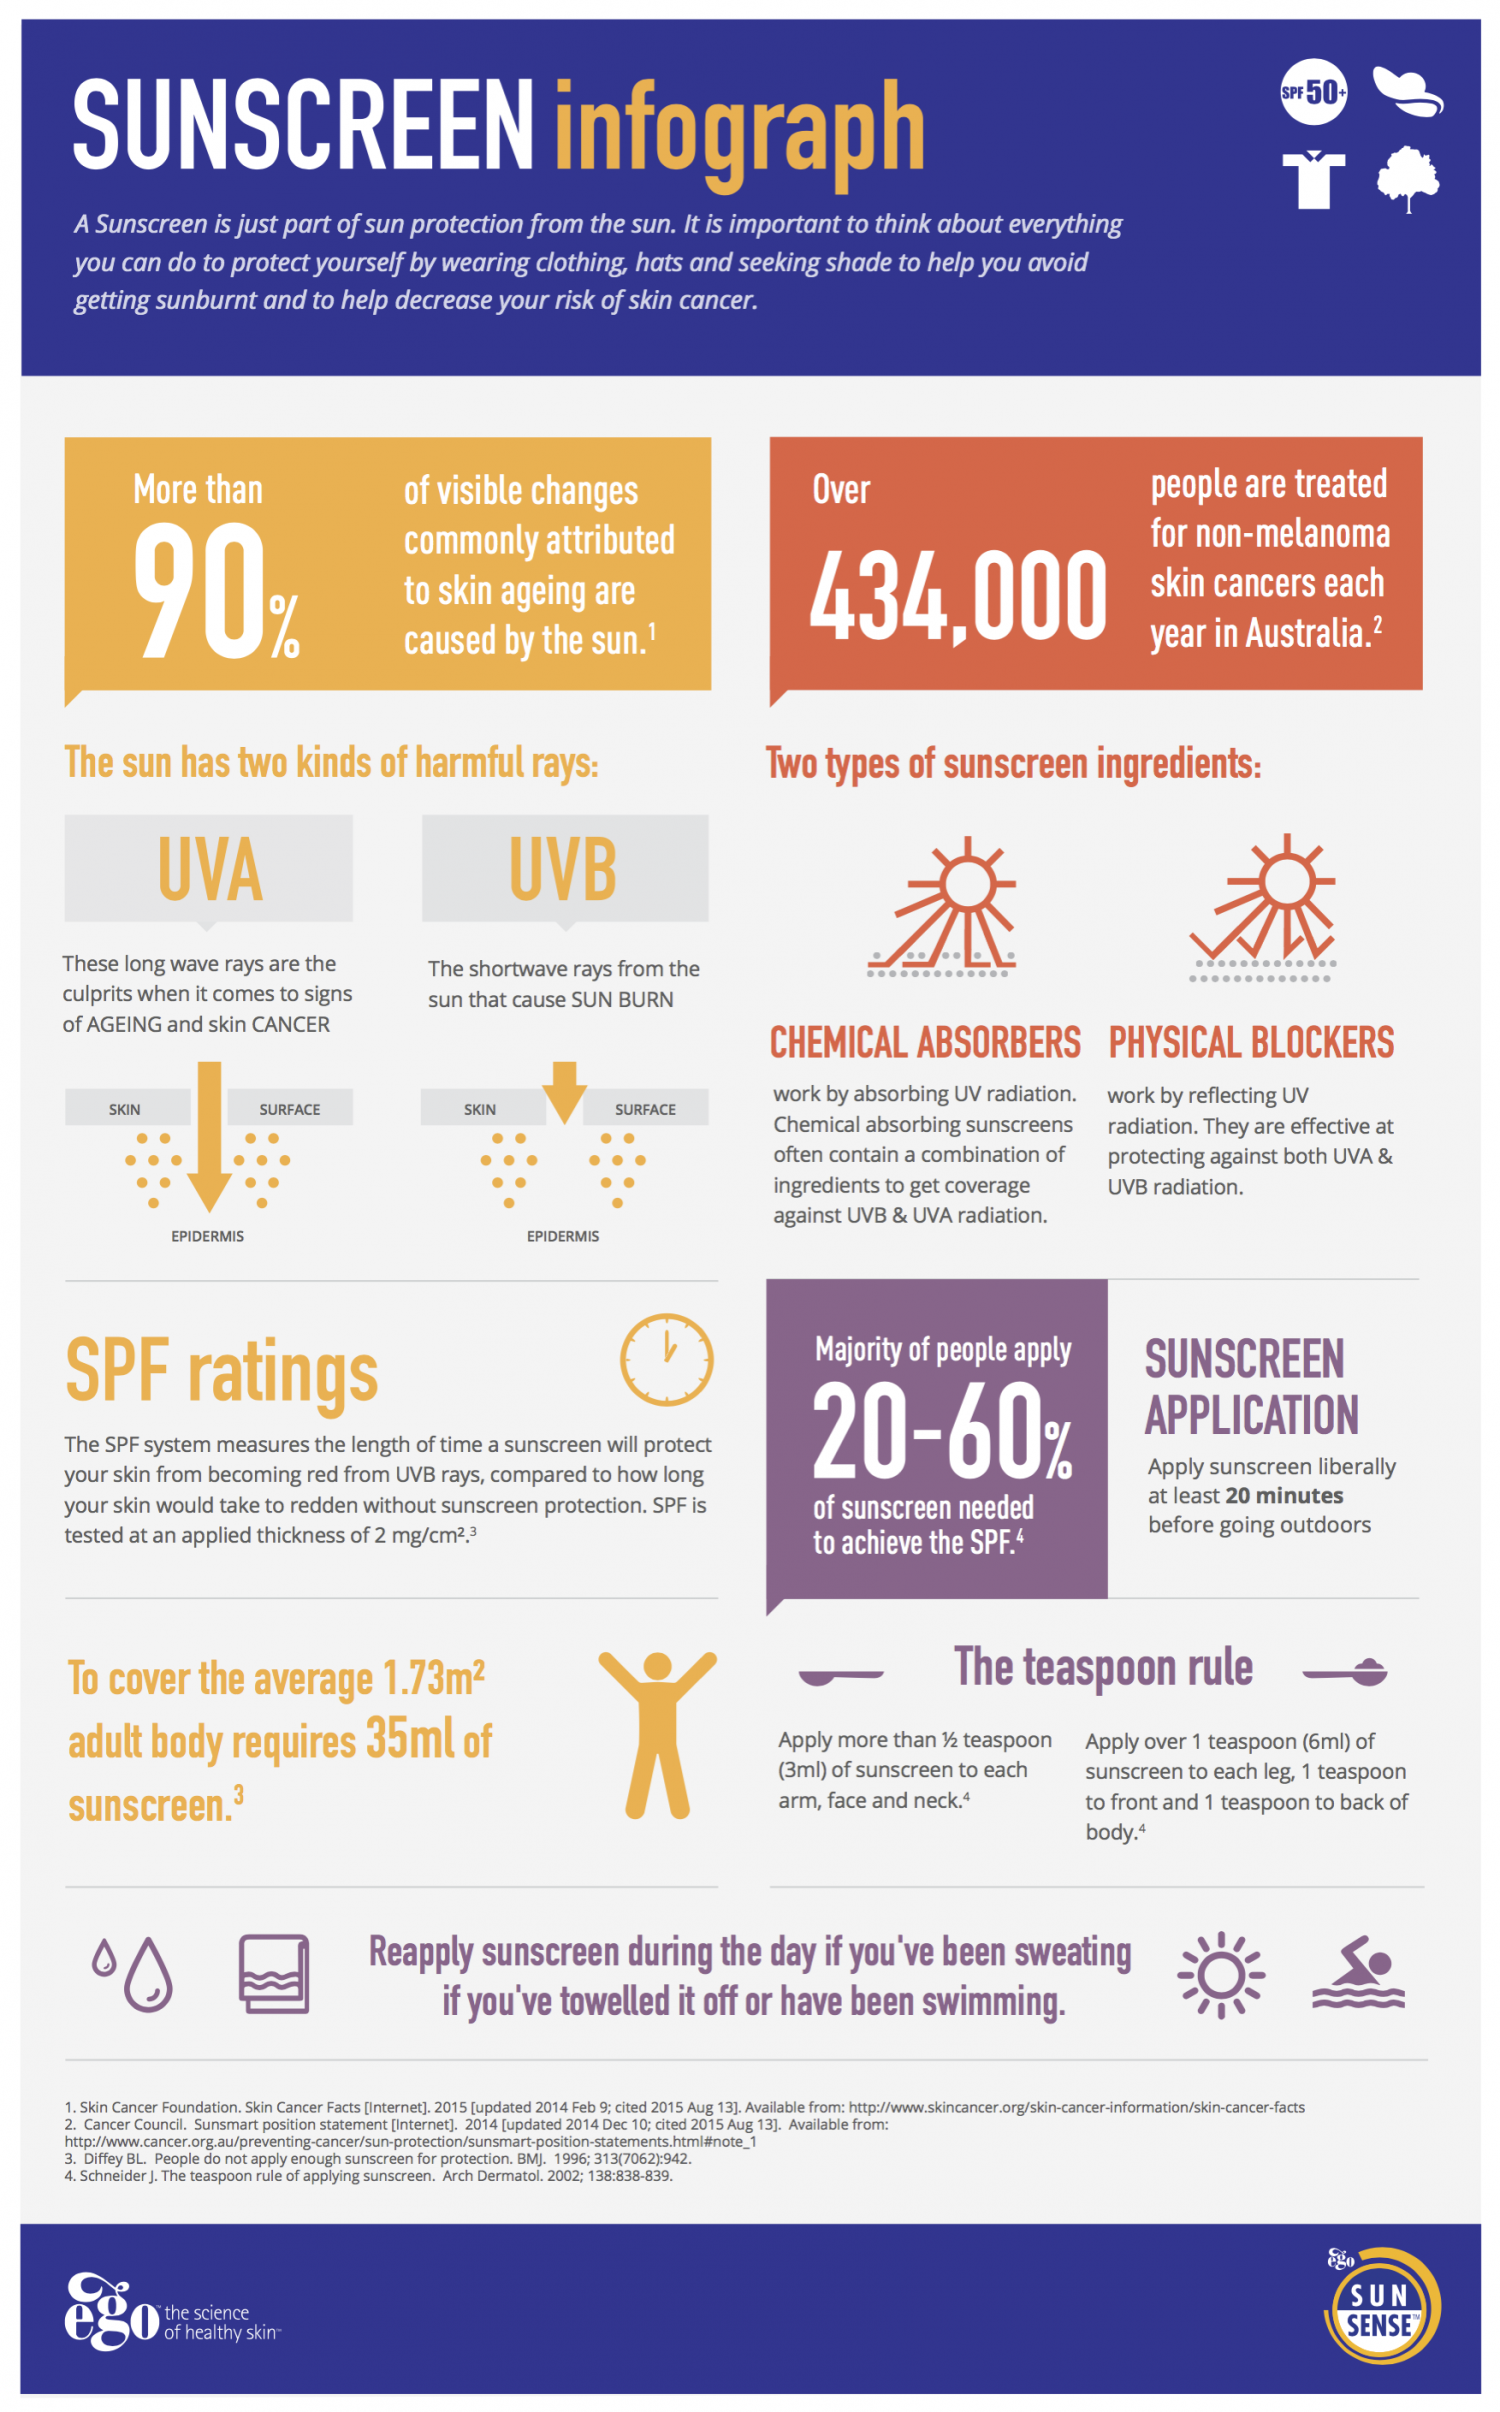 All About Sunscreen Infographic